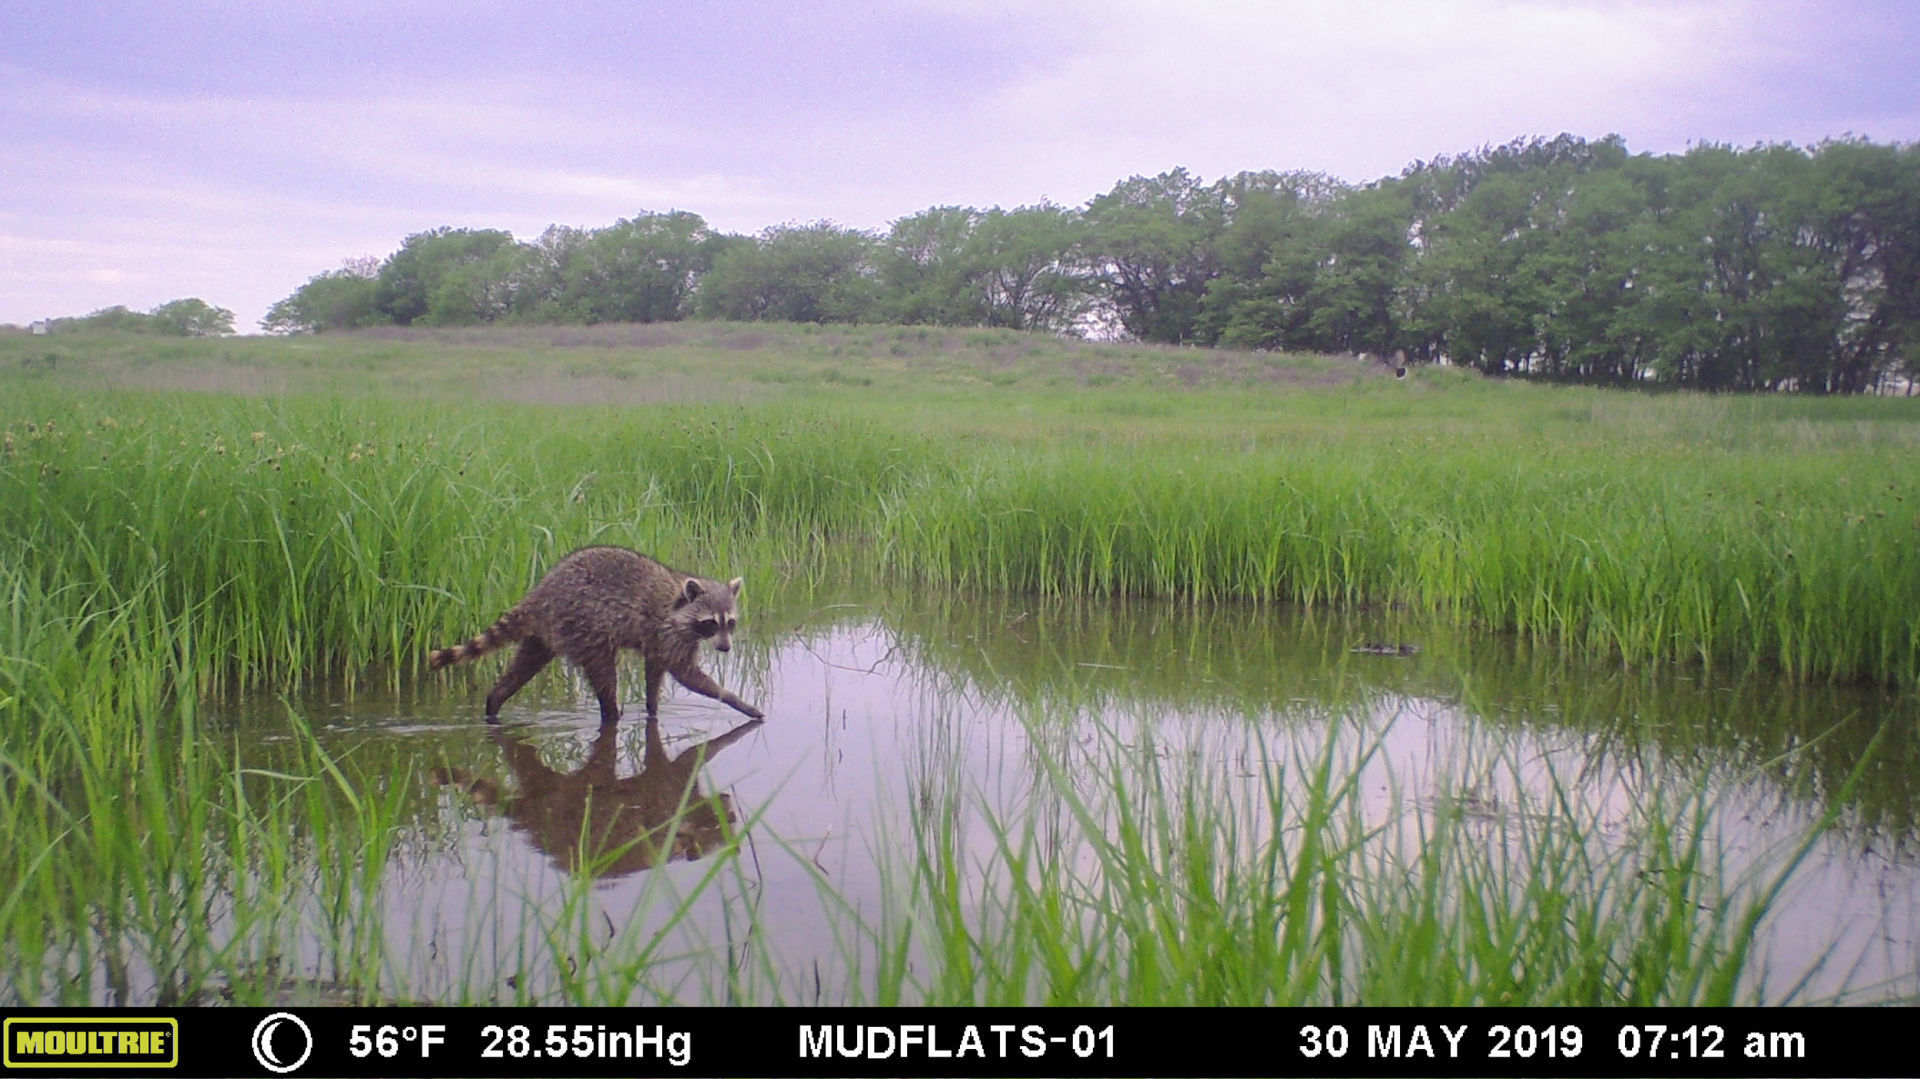 Urban jungle: Student project at saline wetland chronicles